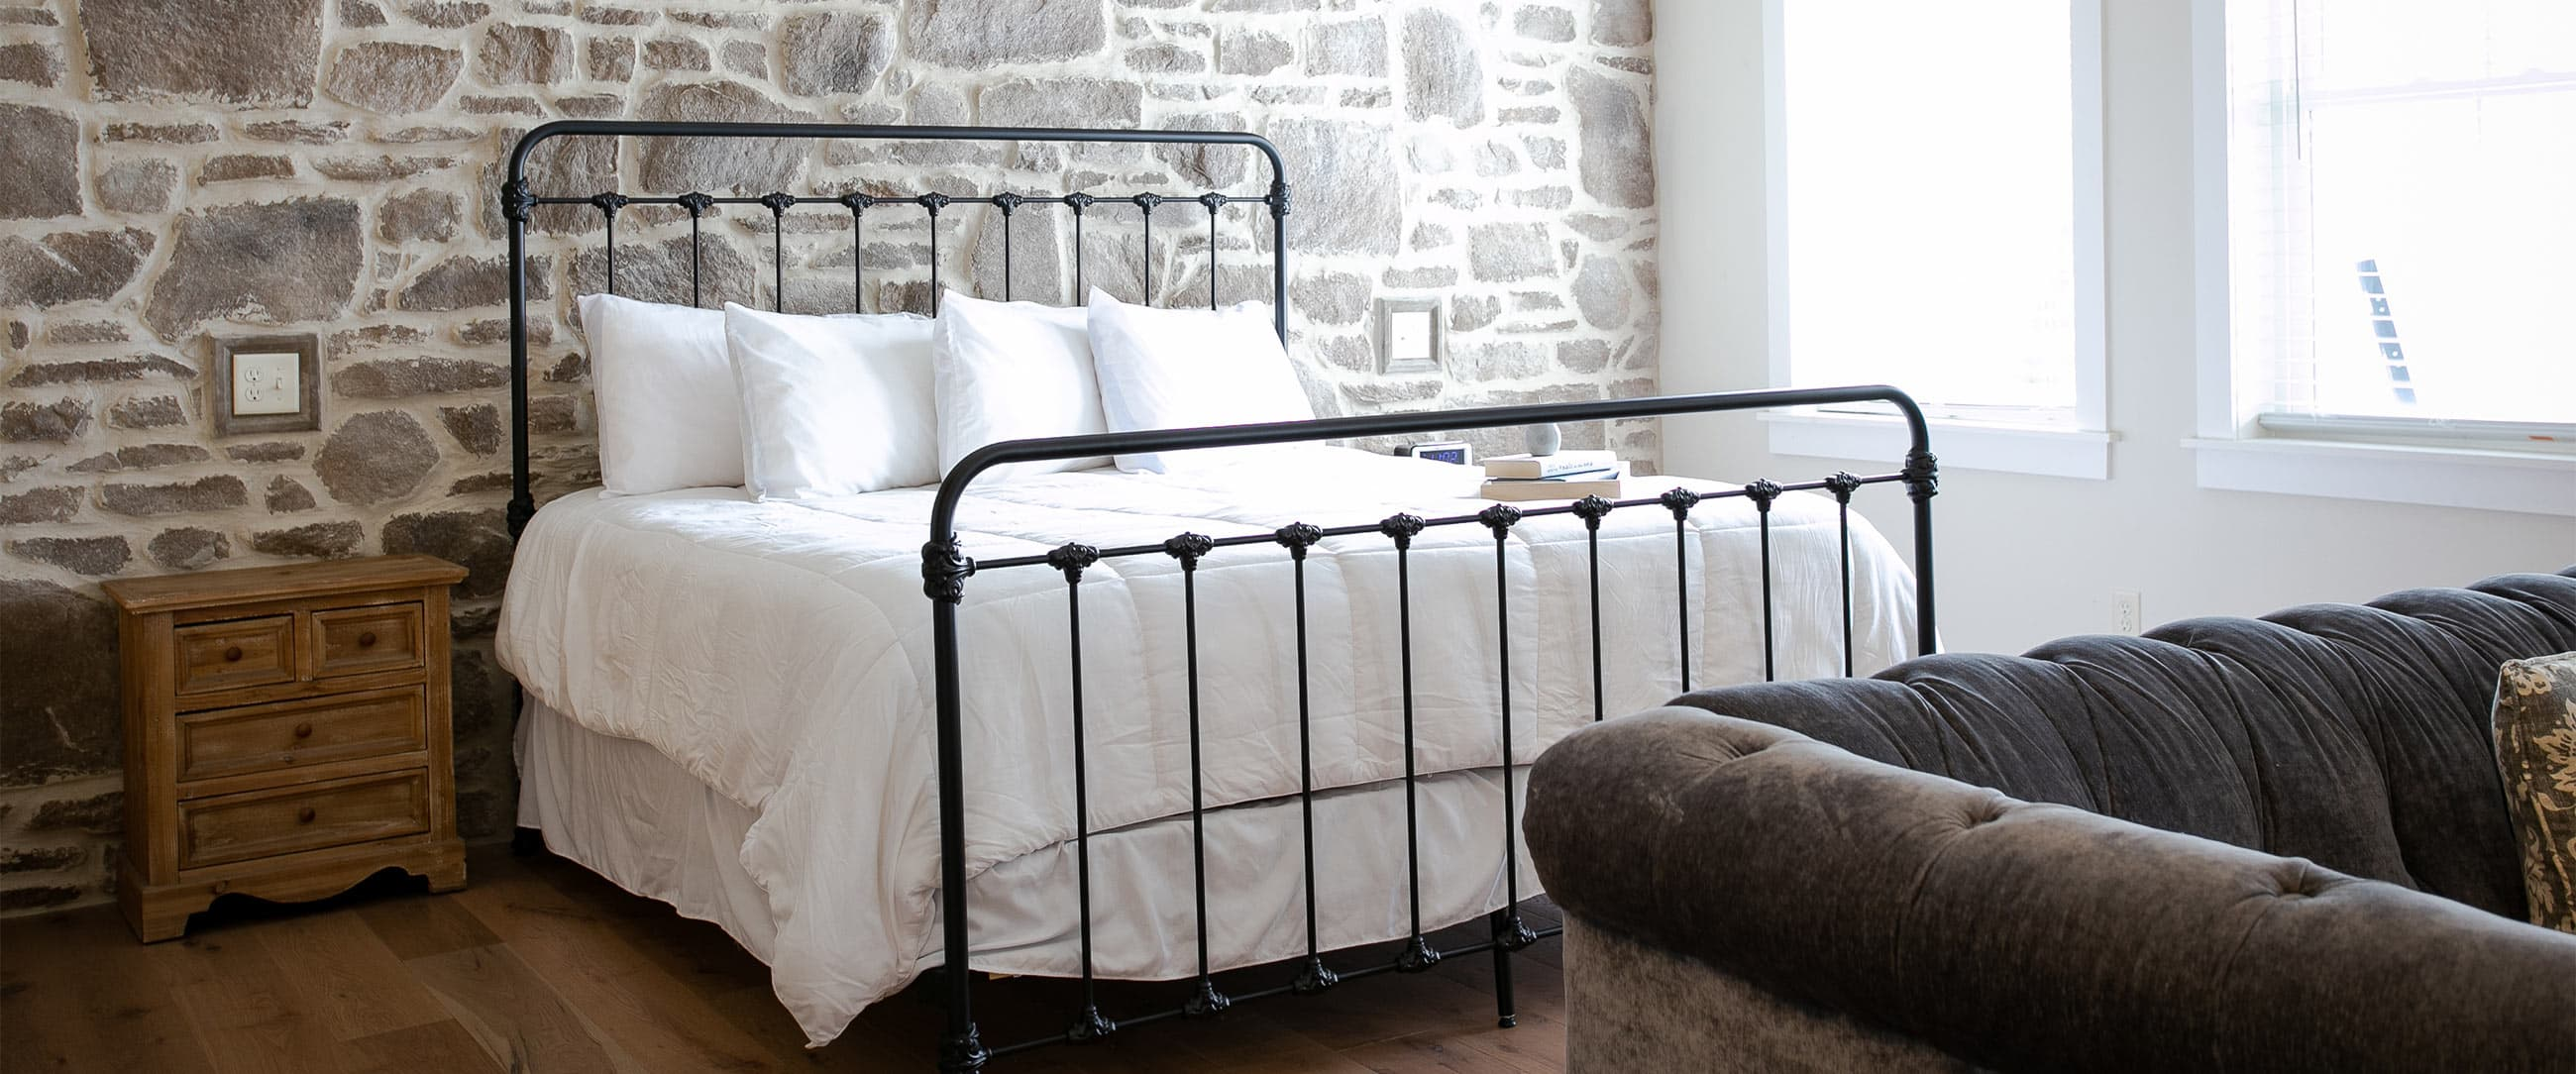 Magnolia suite bed against stone wall